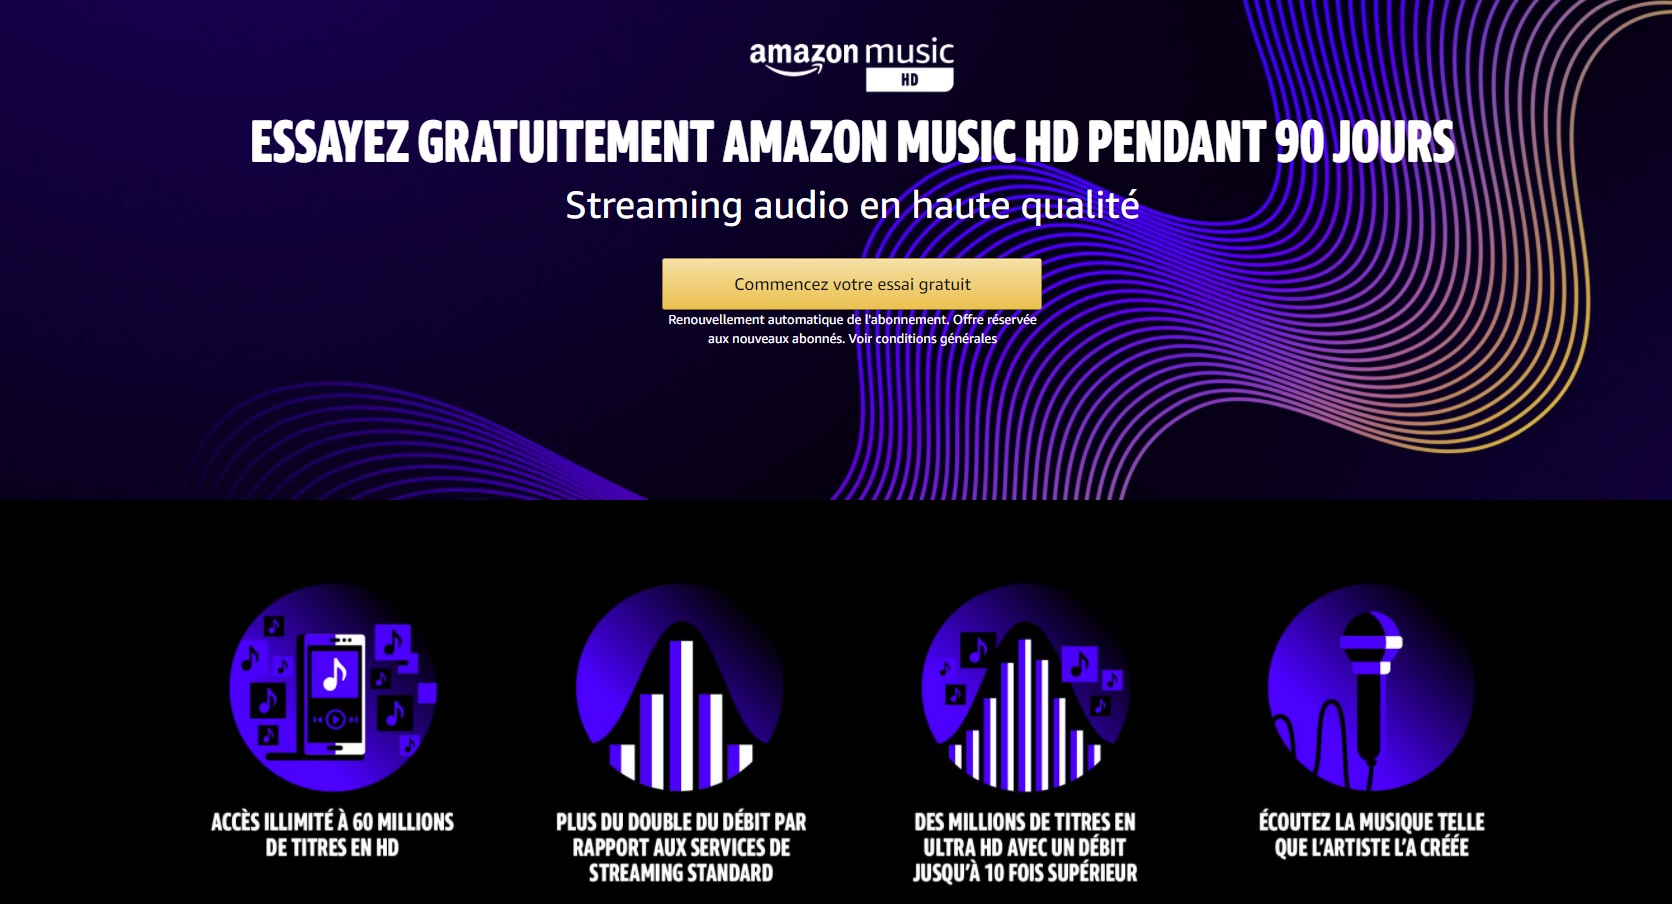 Amazon Music HD ONMag